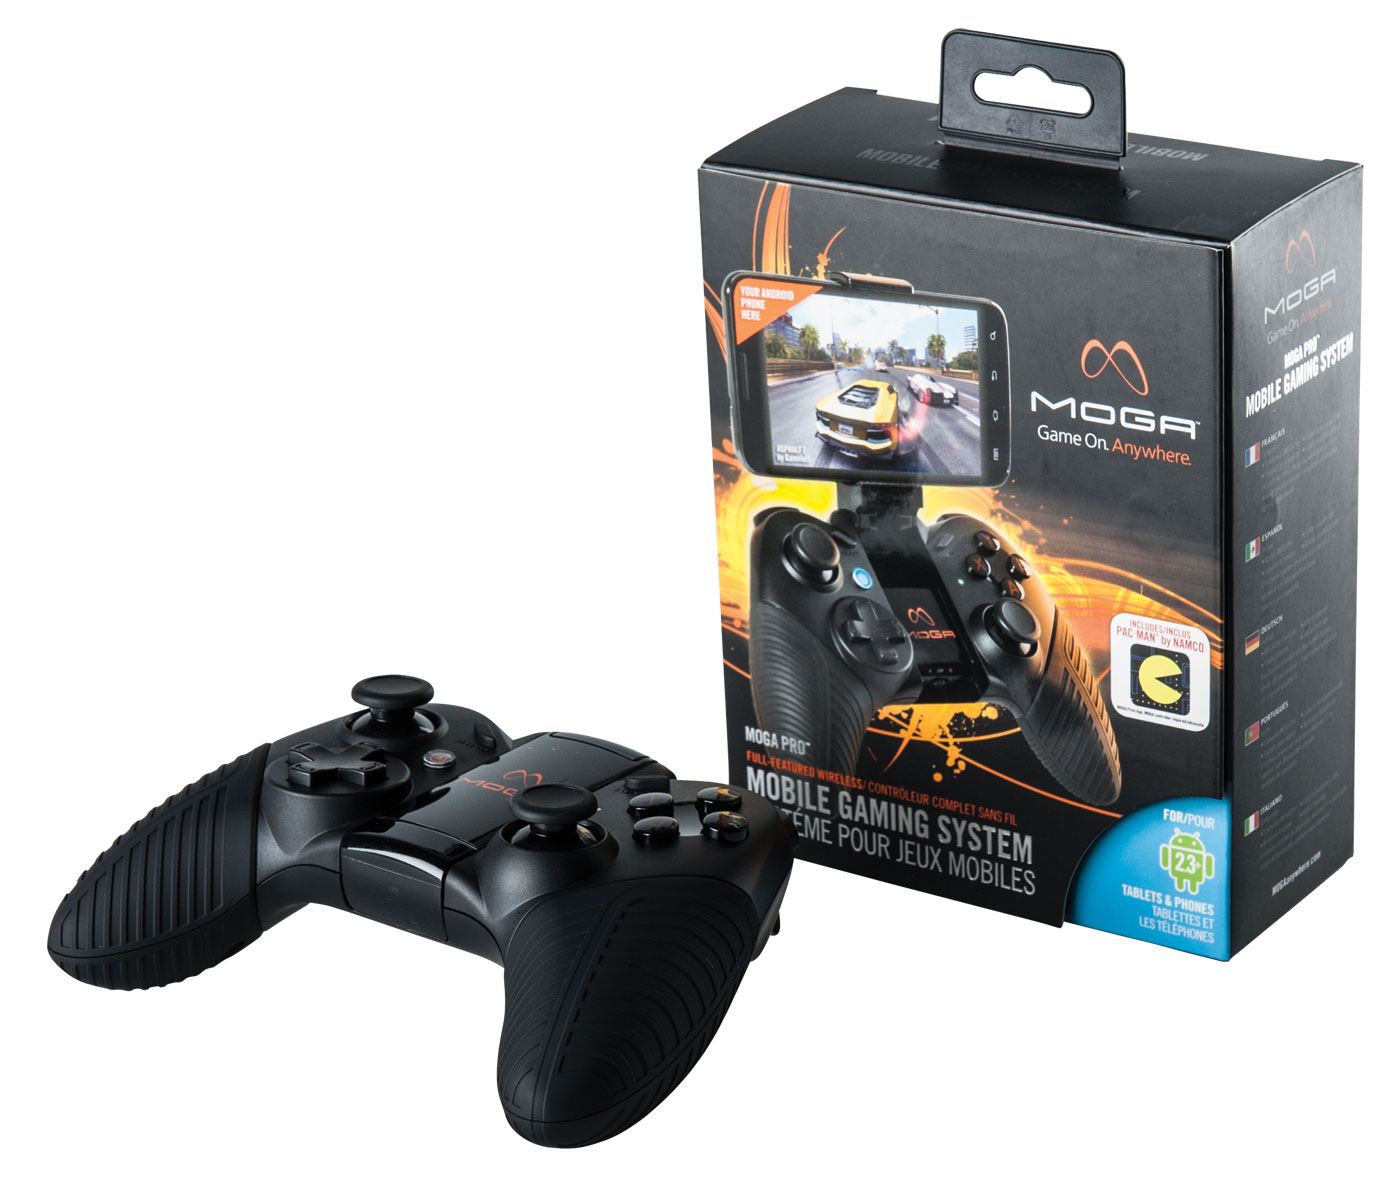 The MOGA Pro Controller allows for a full-console experience with Android devices.